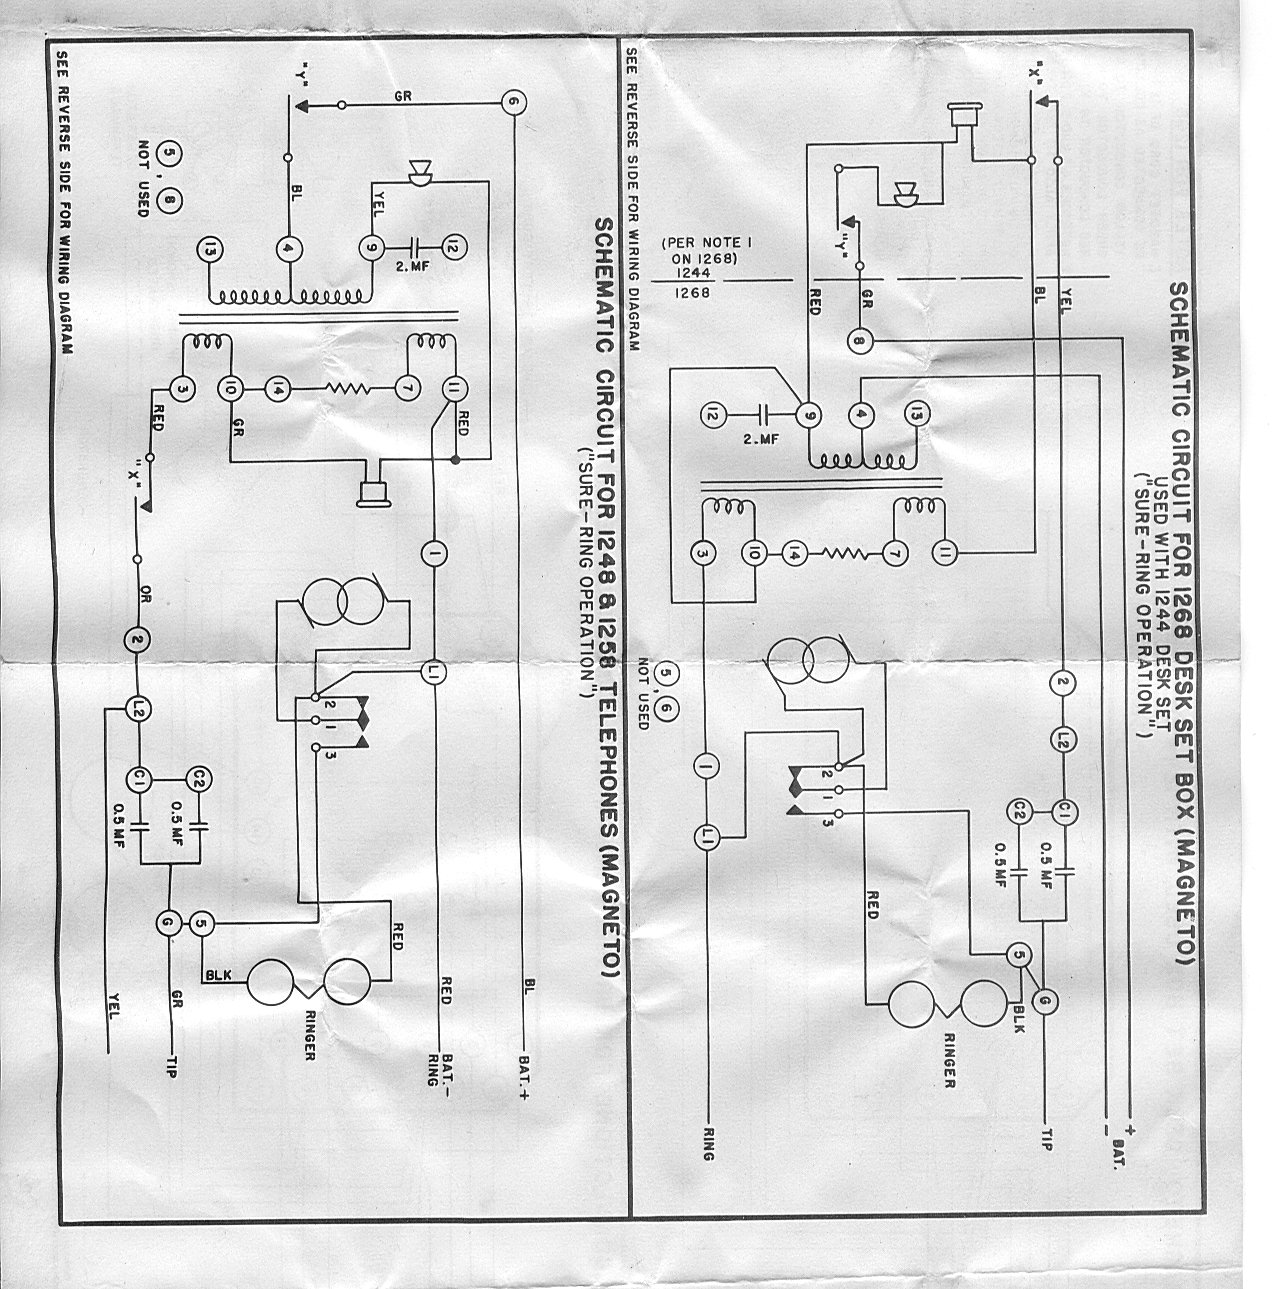 magnetosets2 telephone technical references rotary phone wiring diagram at gsmx.co